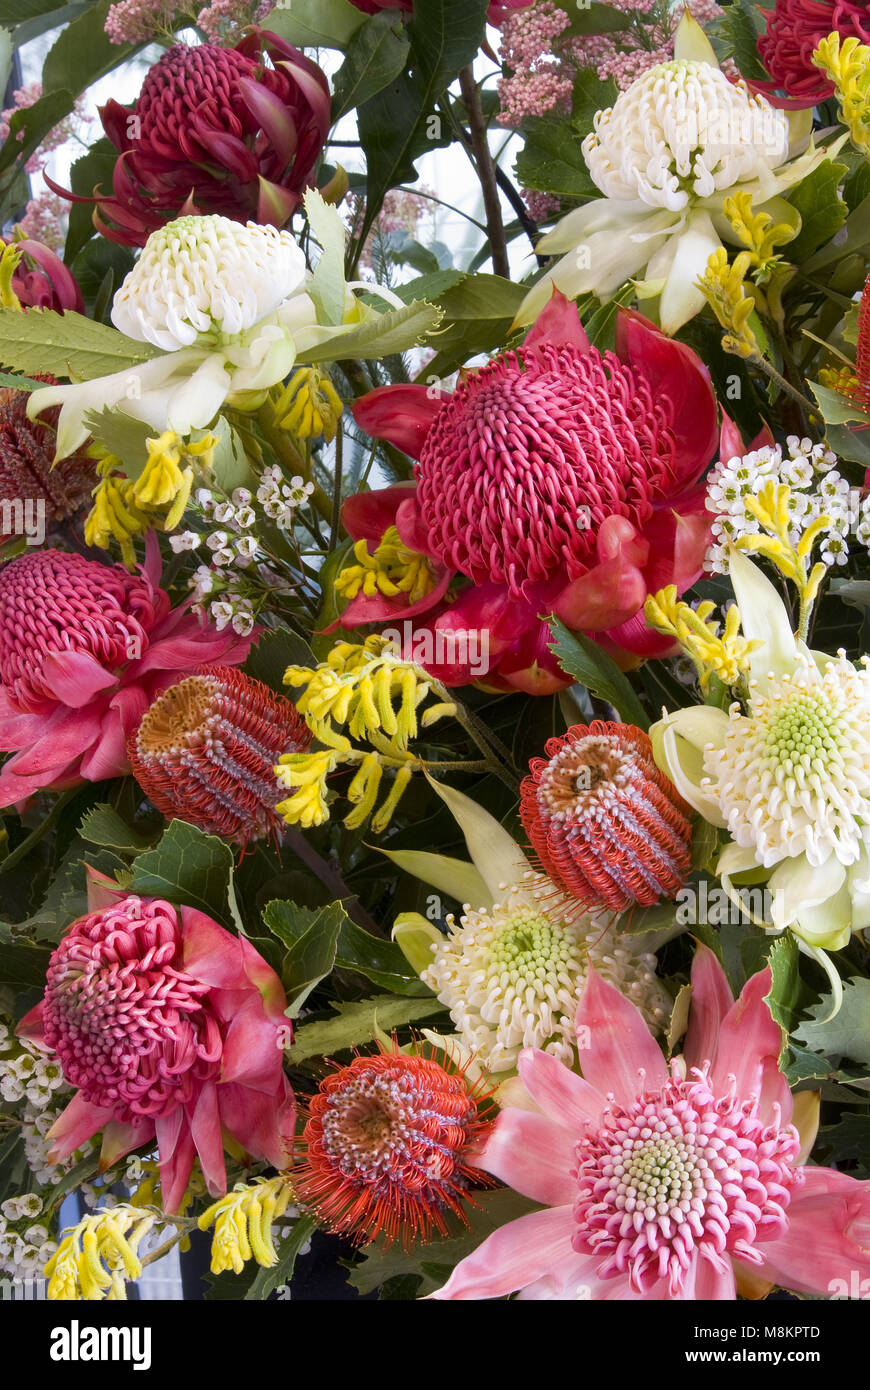 An assorted selection of Australian wildflowers including Waratahs and Banksia flowers - Stock Image